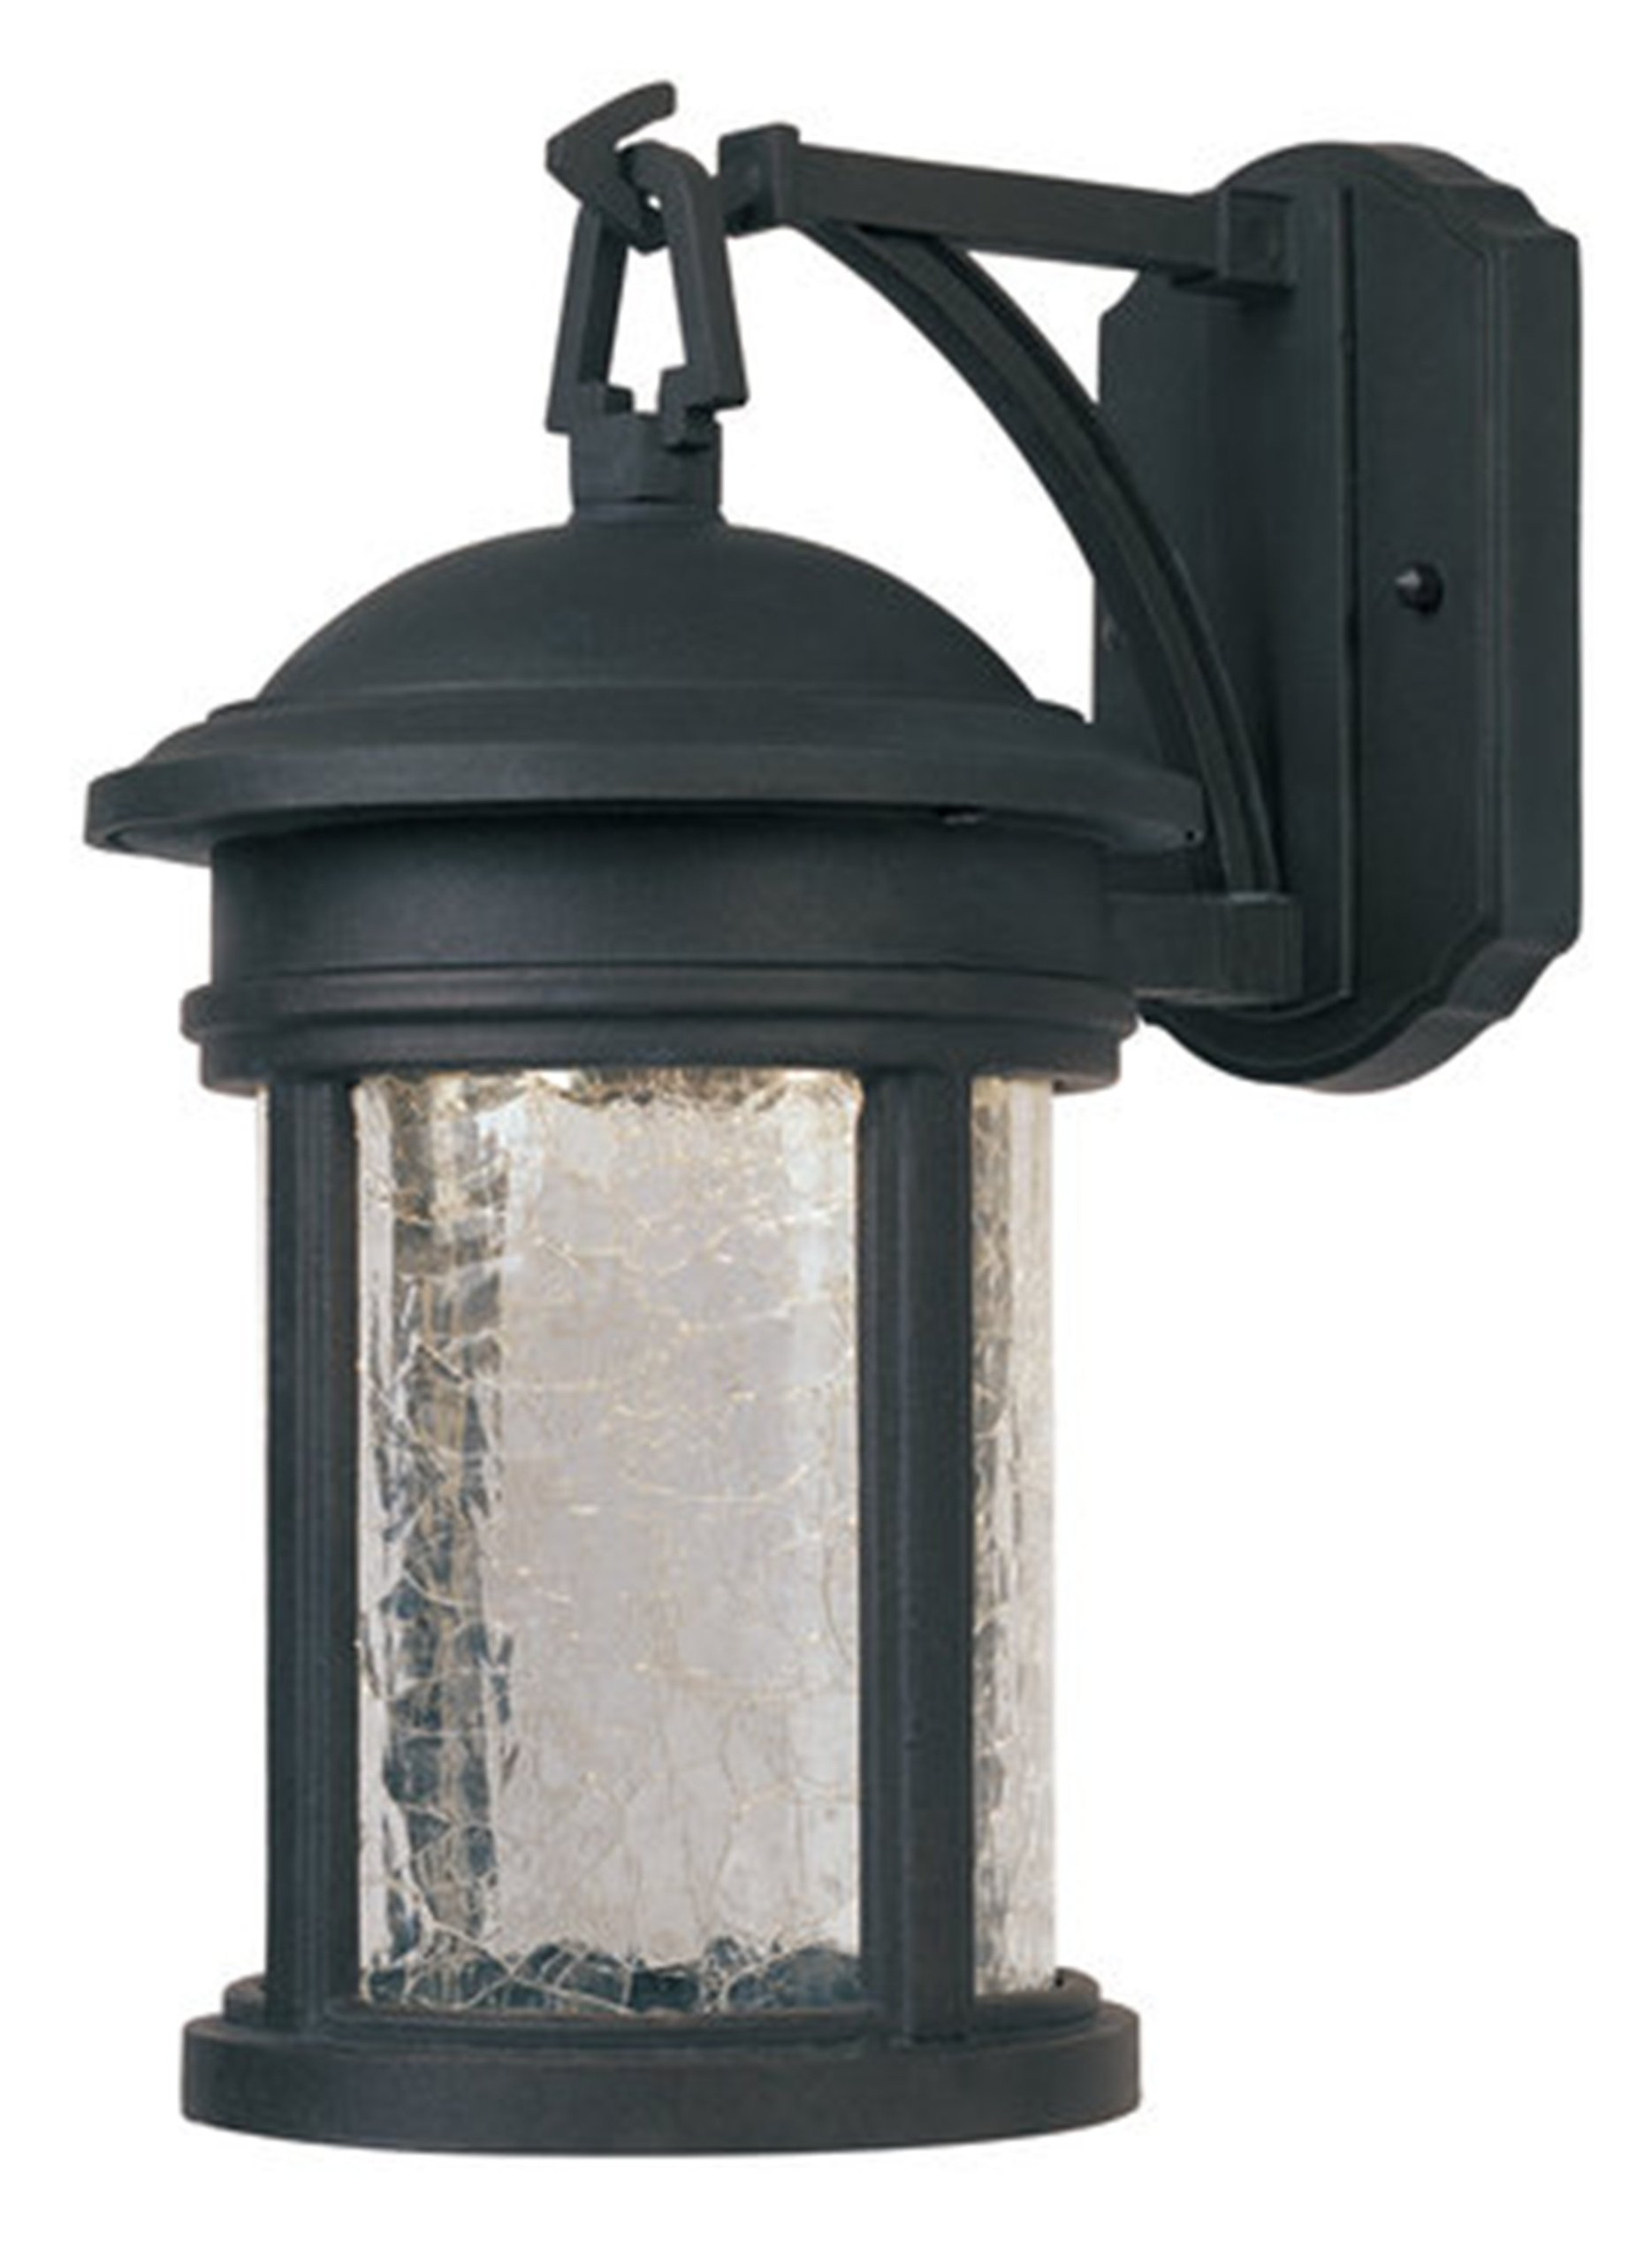 Designers Fountain LED31111-ORB Prado Wall Lanterns, Oil Rubbed Bronze by Designers Fountain